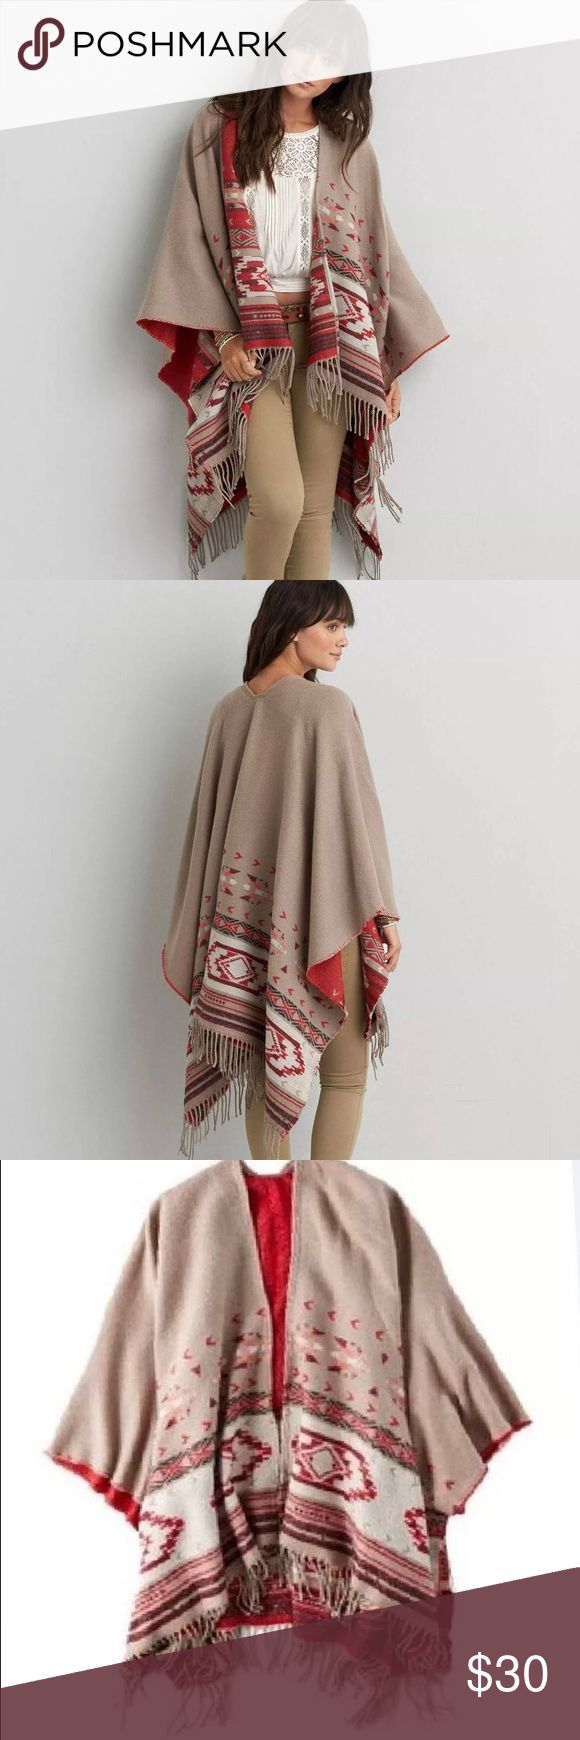 NWT Women AEO Blanket Poncho, One Size Outfitters Product Details  Drape your look with free-spirited style & vintage inspiration. Inspired by the American Southwest. Soft woven fabric Open front Draped silhouette Bold Southwestern pattern Fringe trim 100% Acrylic Machine Wash American Eagle Outfitters Jackets & Coats